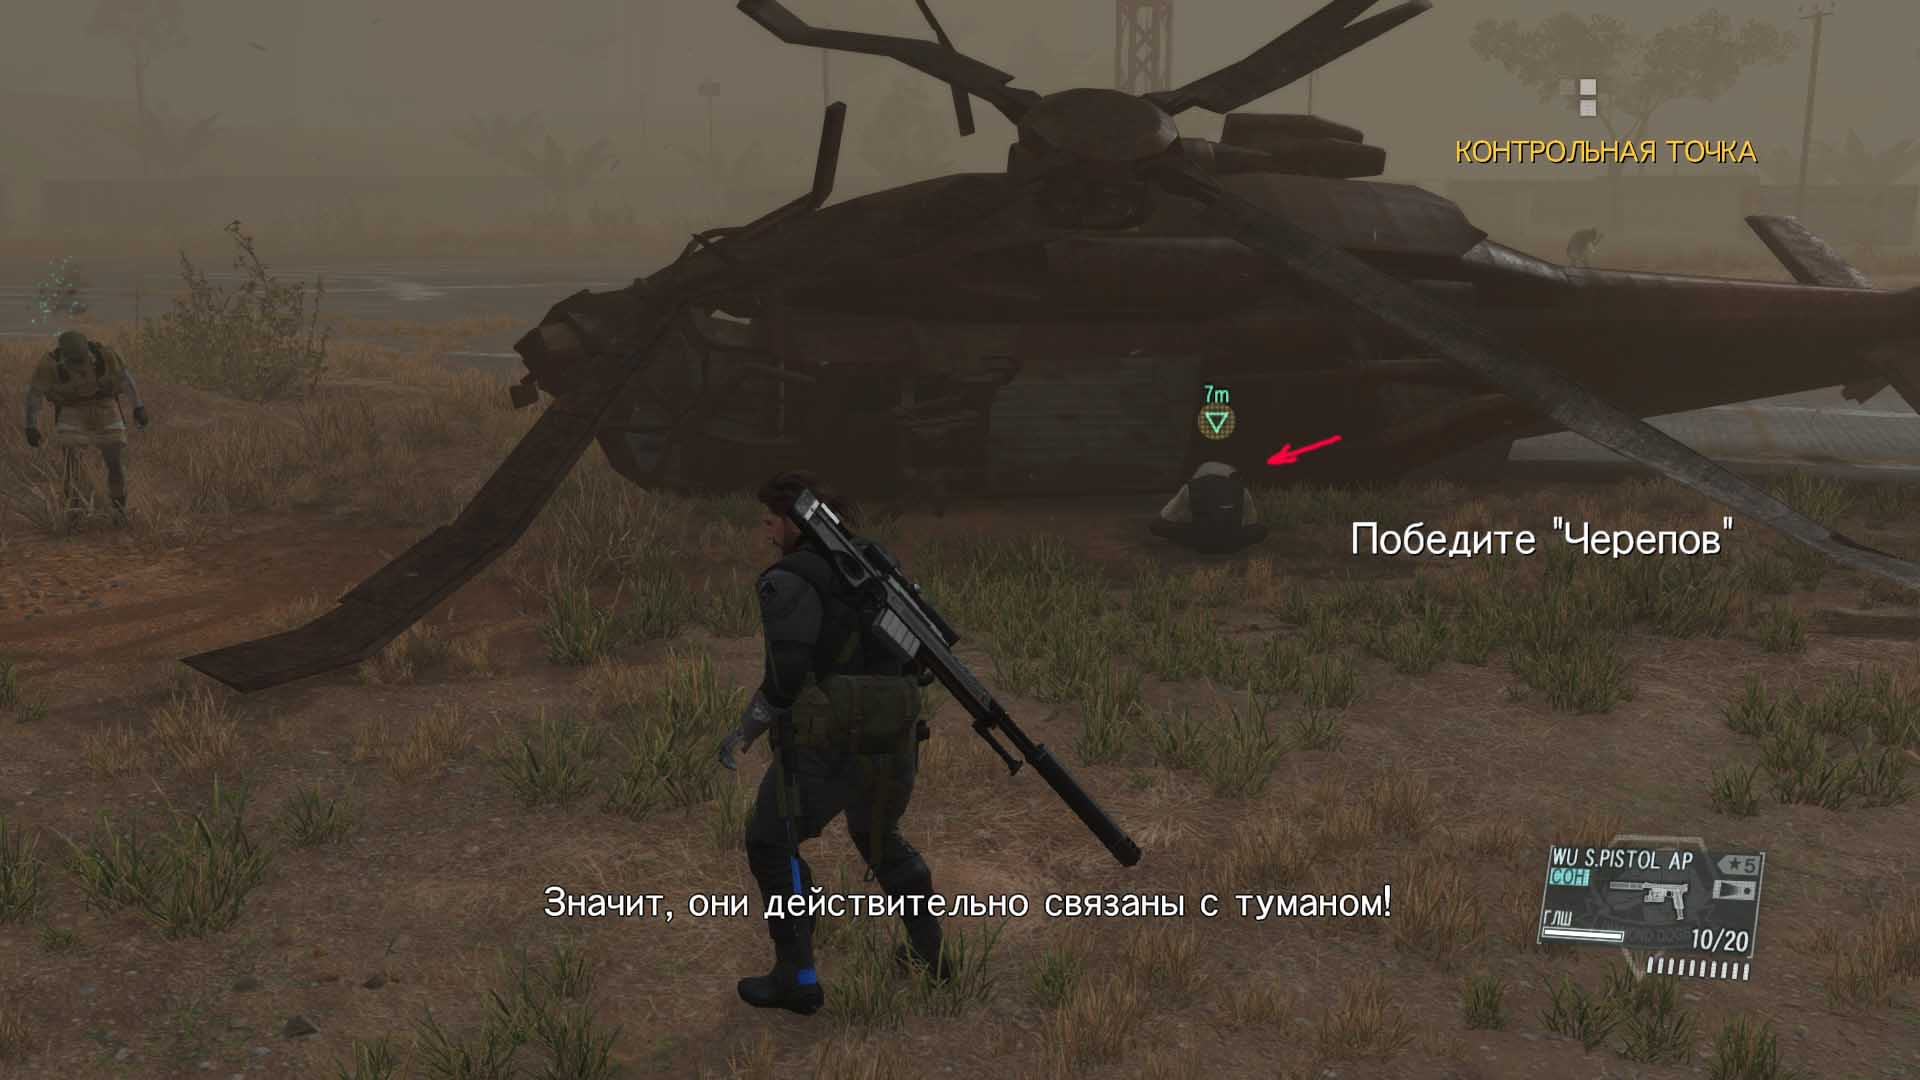 Metal Gear Solid V: The Phantom Pain Code Talker эвакуирован